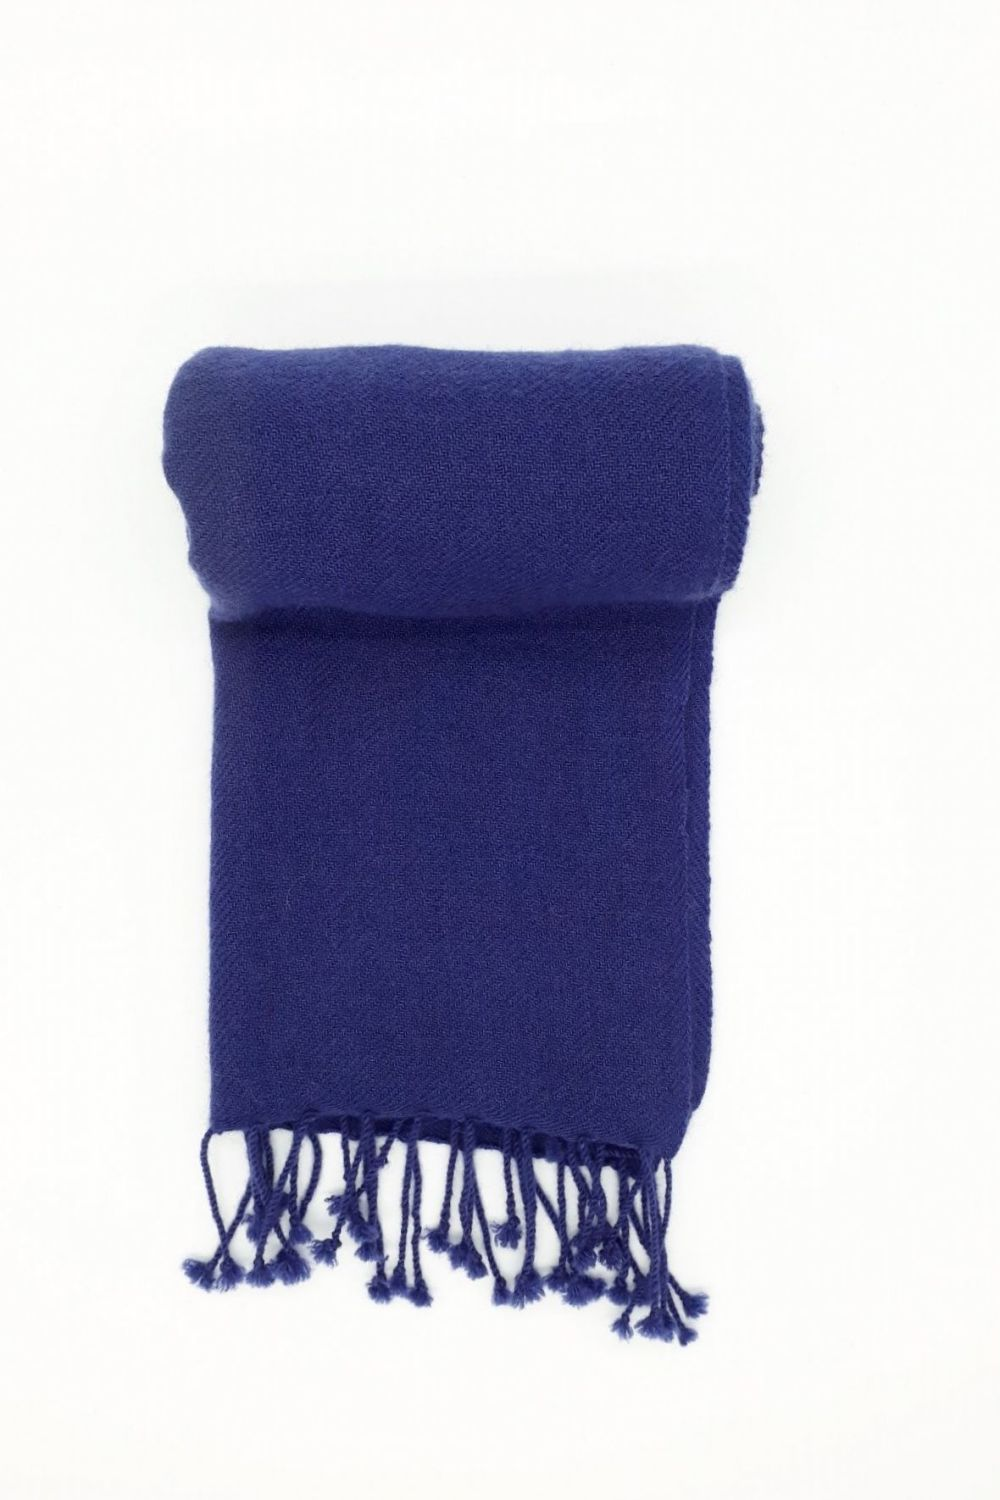 Plain Jayne French Navy Blue 100% Cashmere Scarf